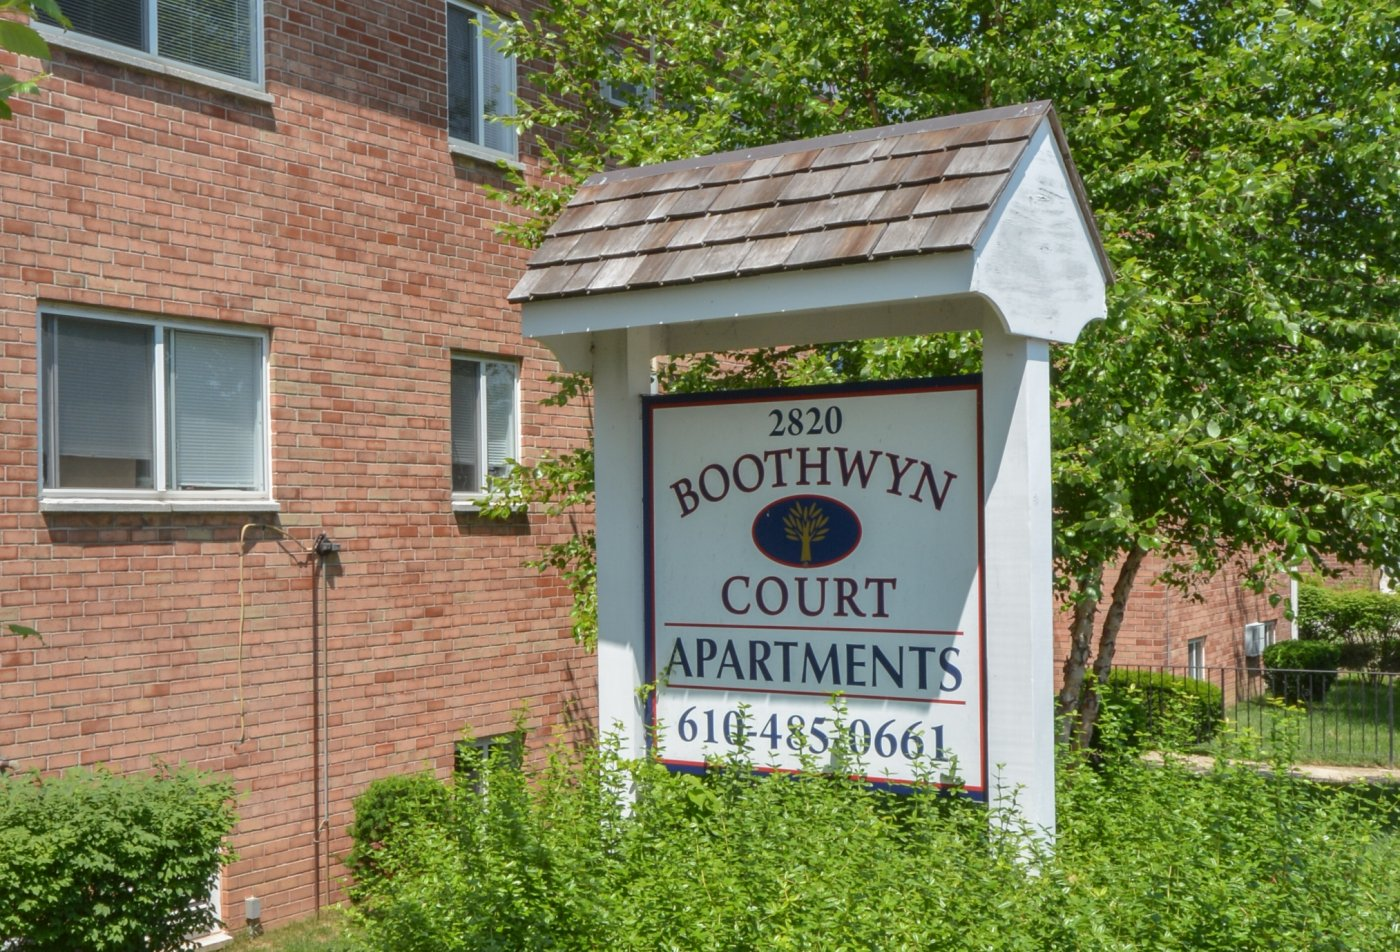 Apartments in Boothwyn, PA   Boothwyn Court Apartments